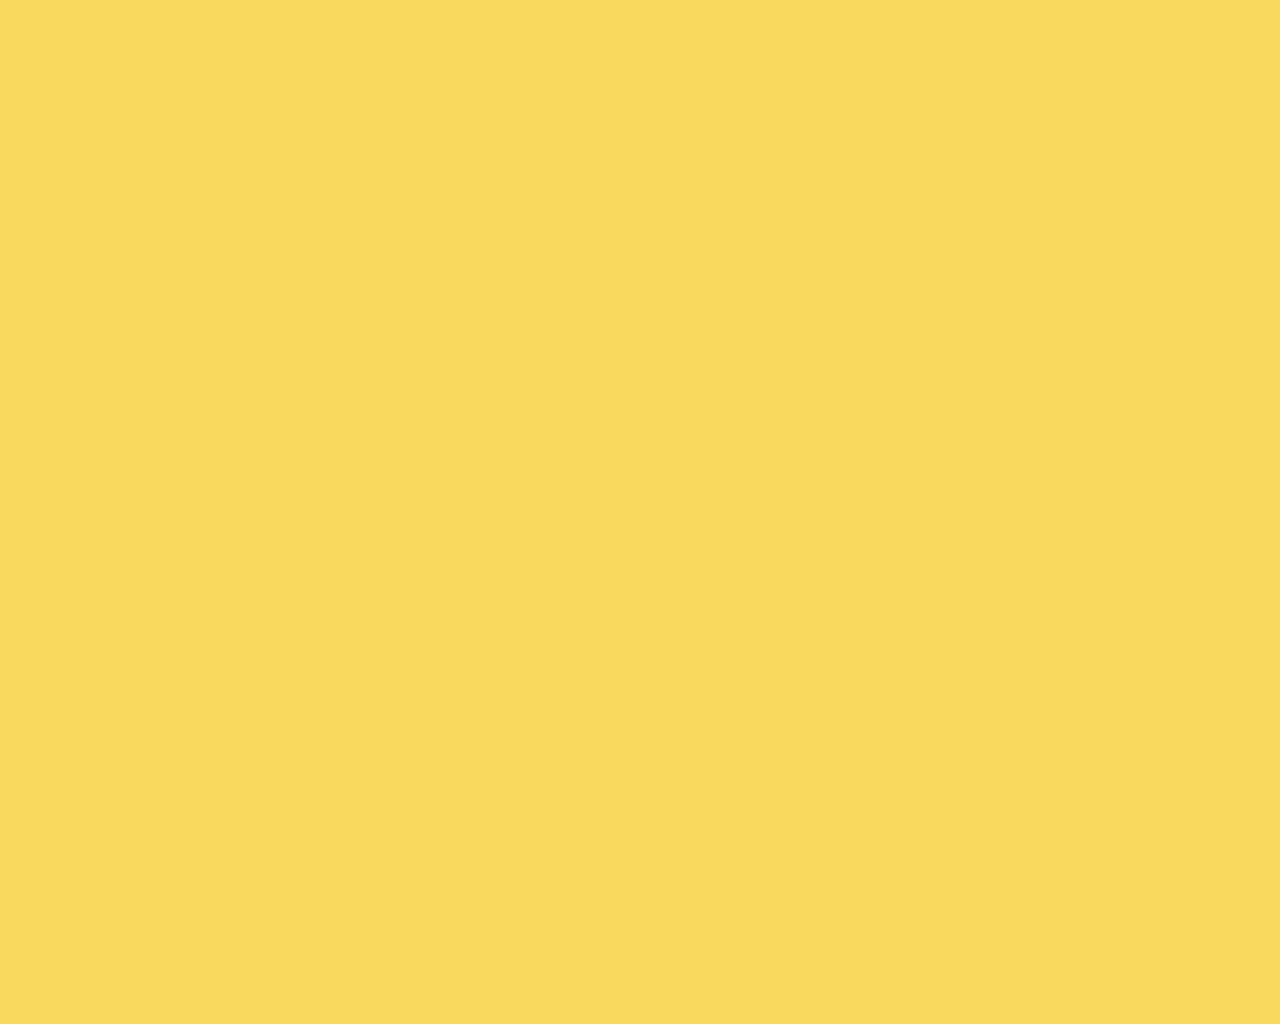 1280x1024 Stil De Grain Yellow Solid Color Background